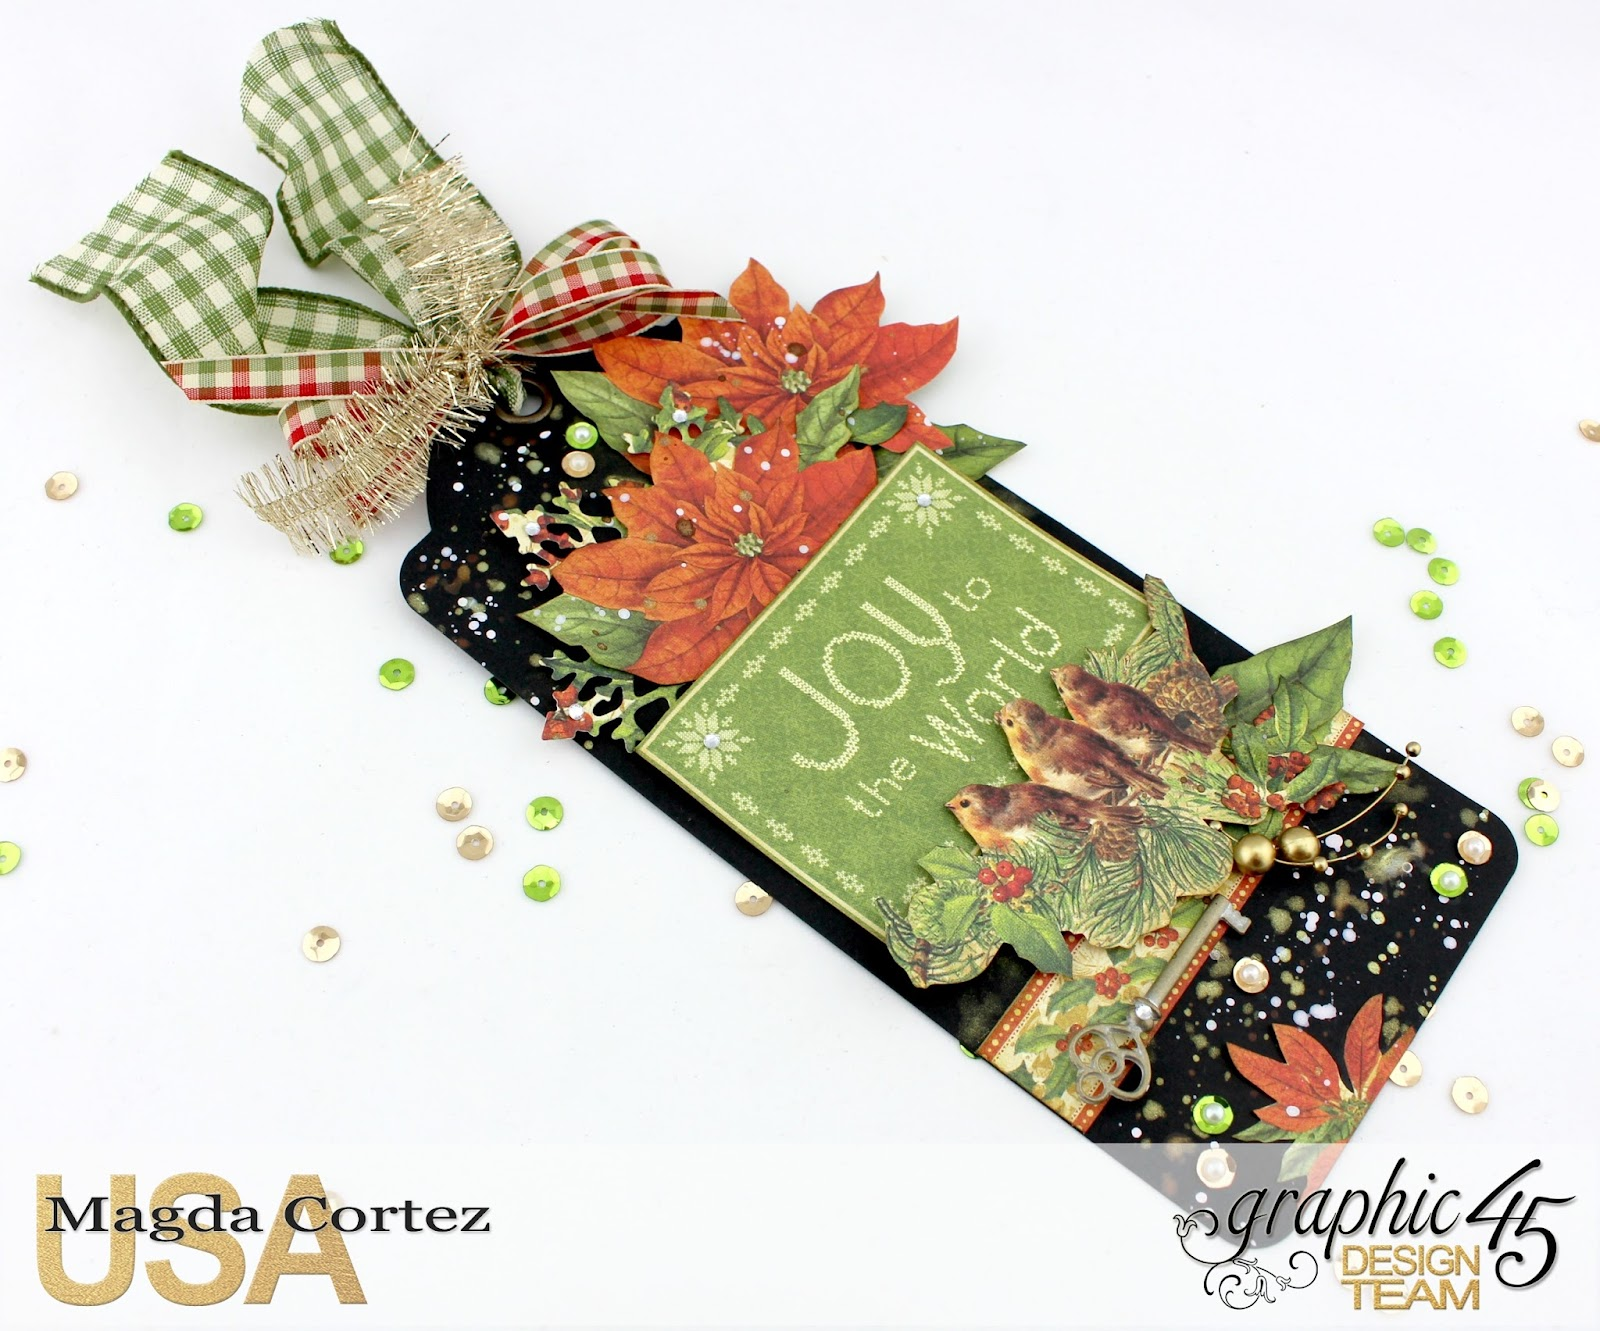 Joy Set of Tags, Winter Wonderland, By Magda Cortez, Product by Graphic 45, Photo 06 of 09.jpg